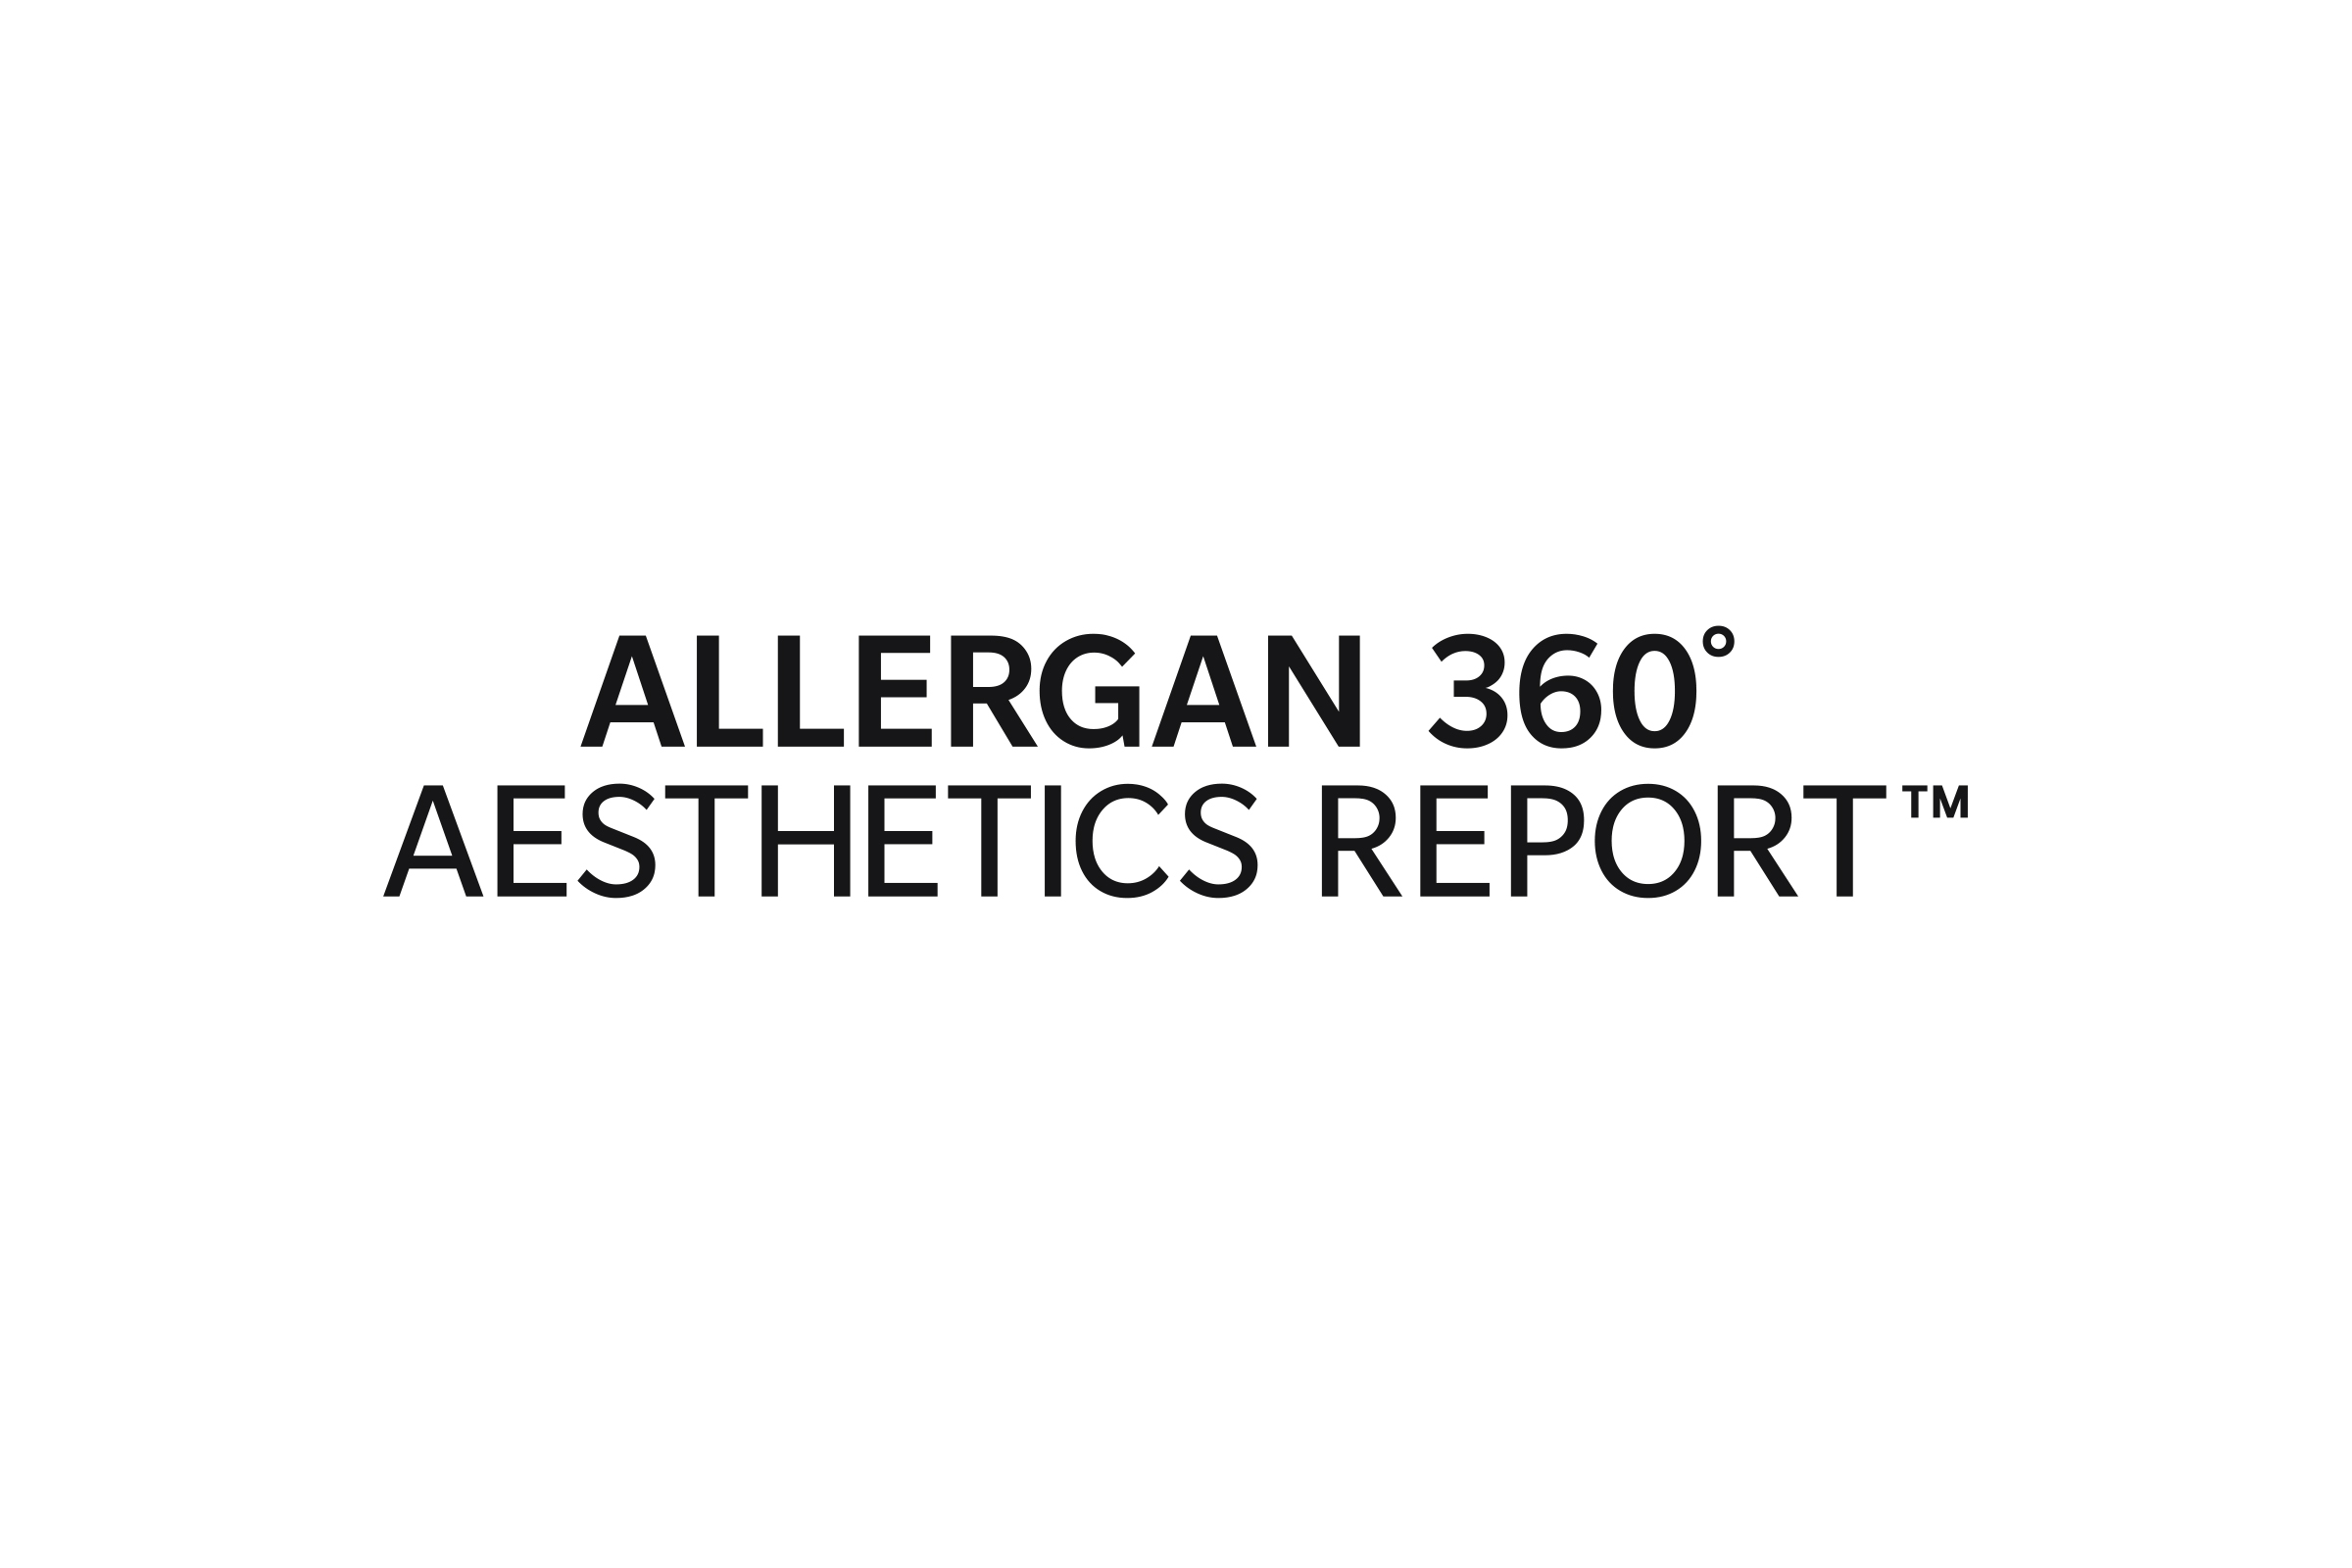 Allergan 360 Aesthetics Report logo